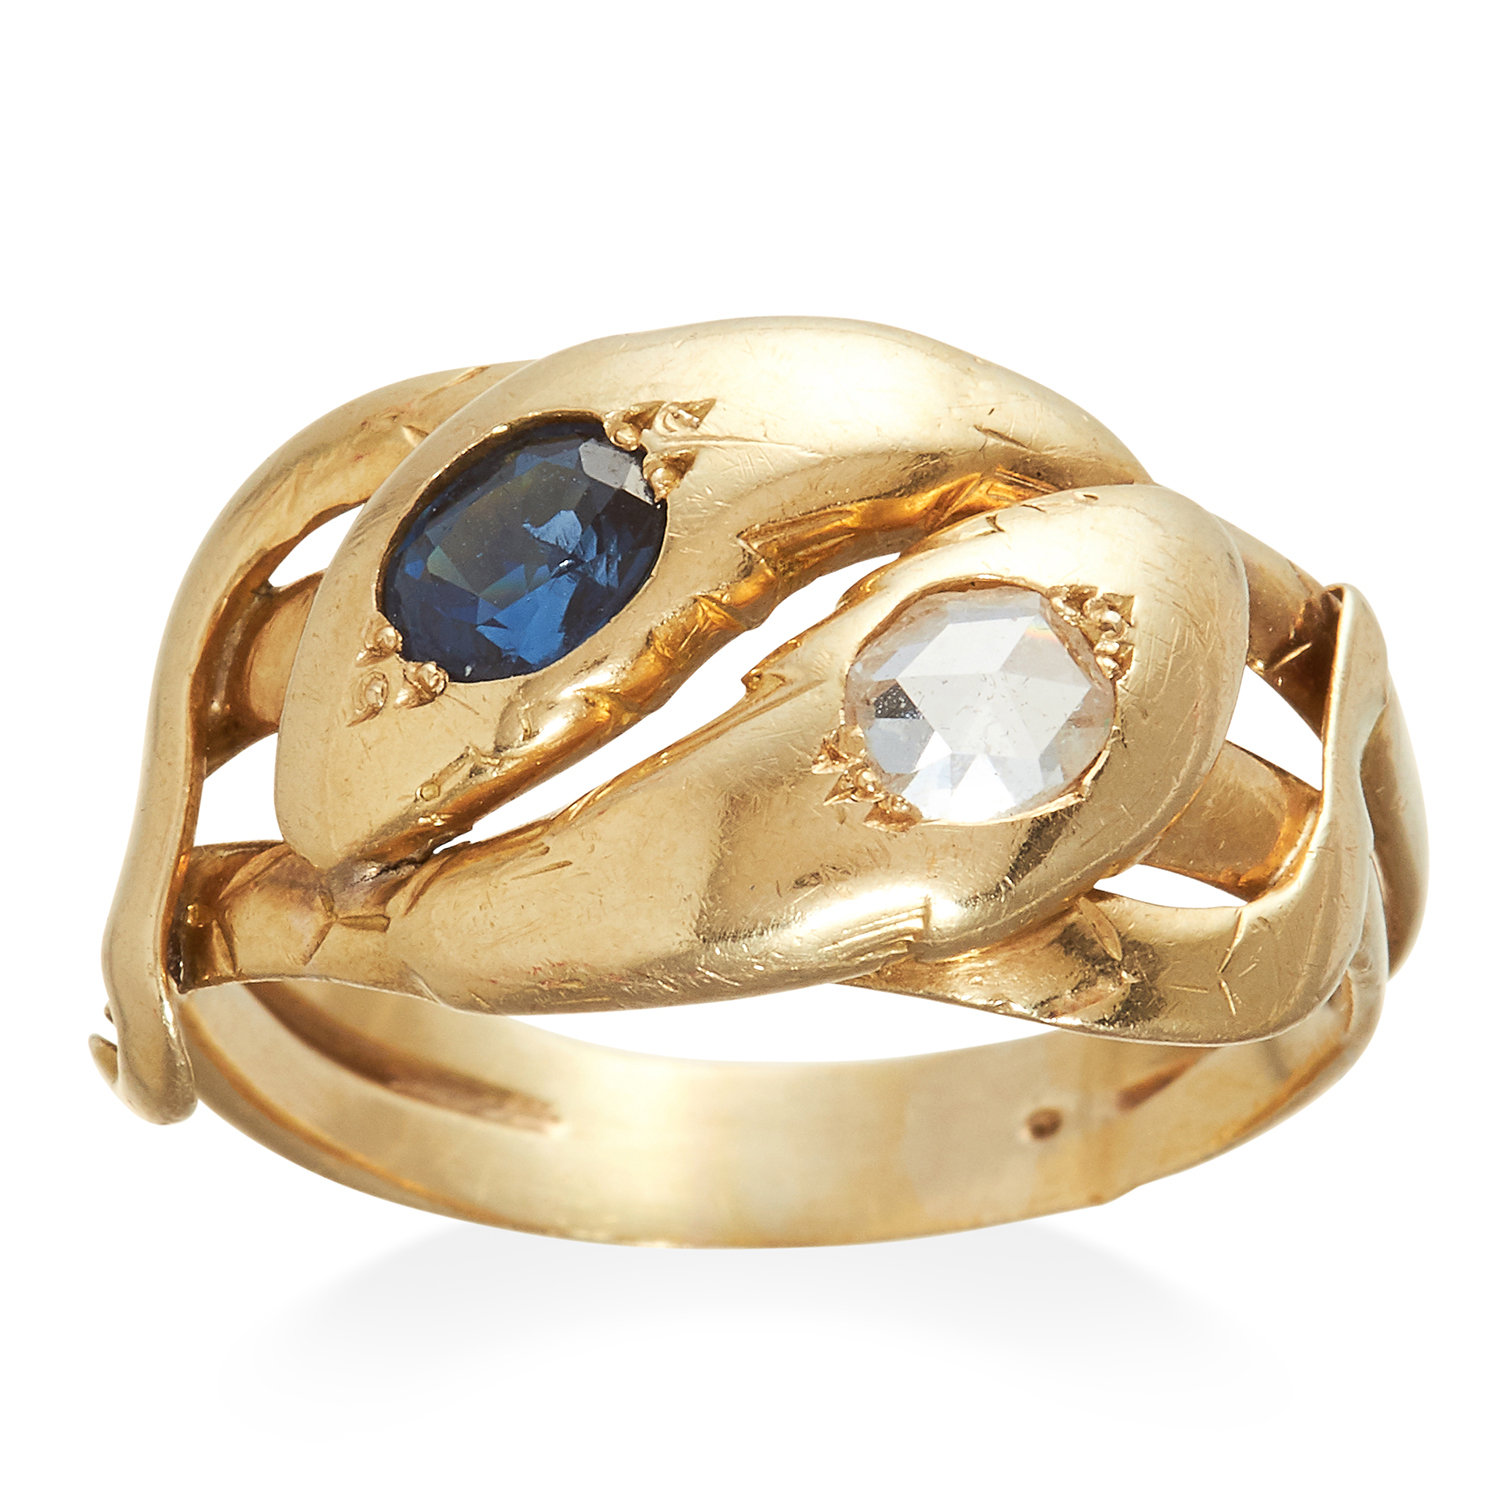 Los 325 - AN ANTIQUE SAPPHIRE AND DIAMOND SNAKE RING in high carat yellow gold, designed as two interwoven